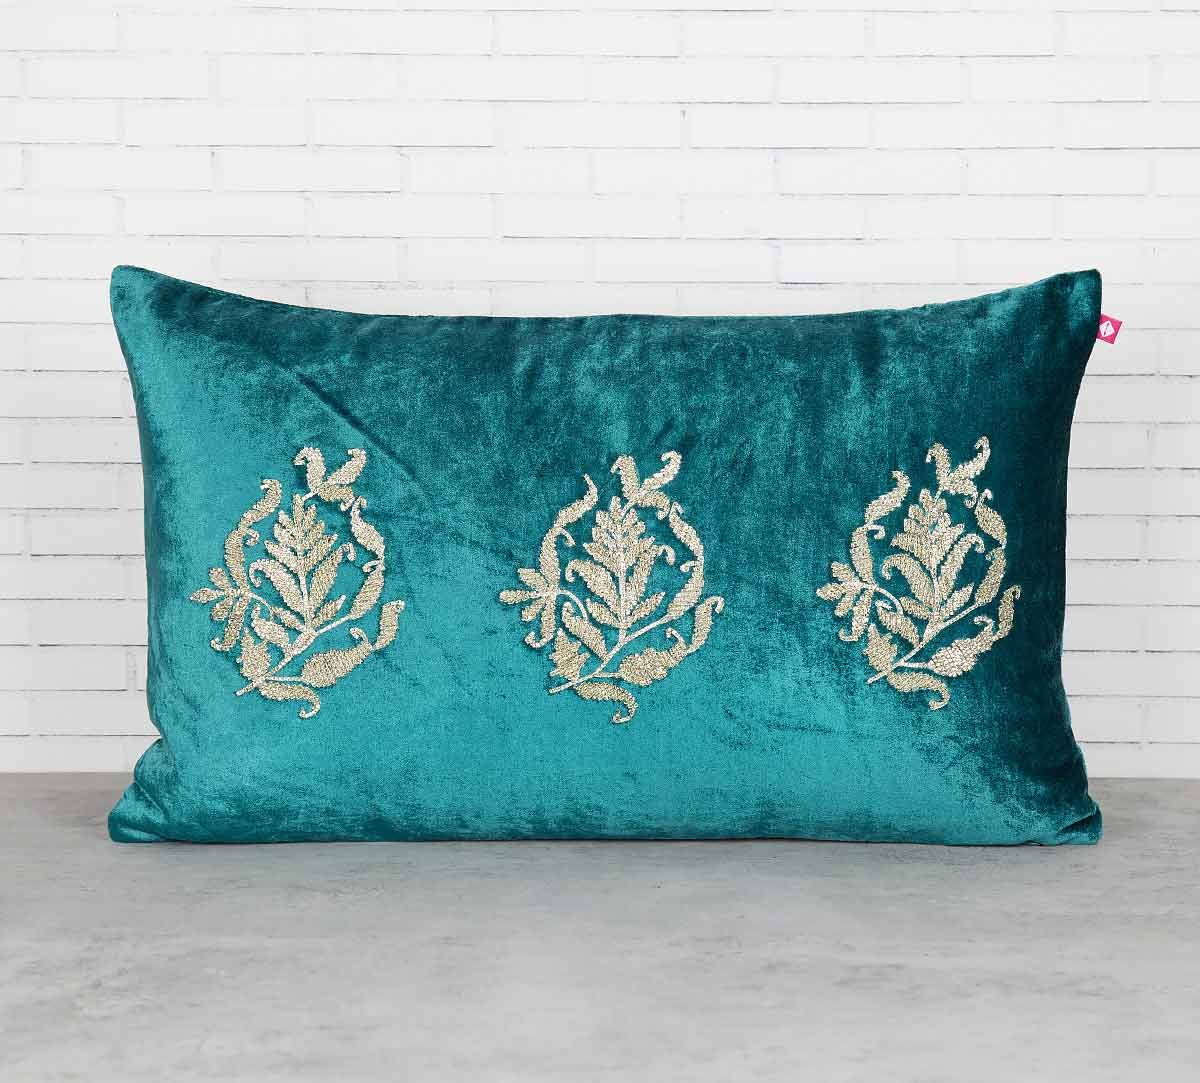 India Circus Trickles of Flower Peacock Green Embroidered Velvet Cushion Cover